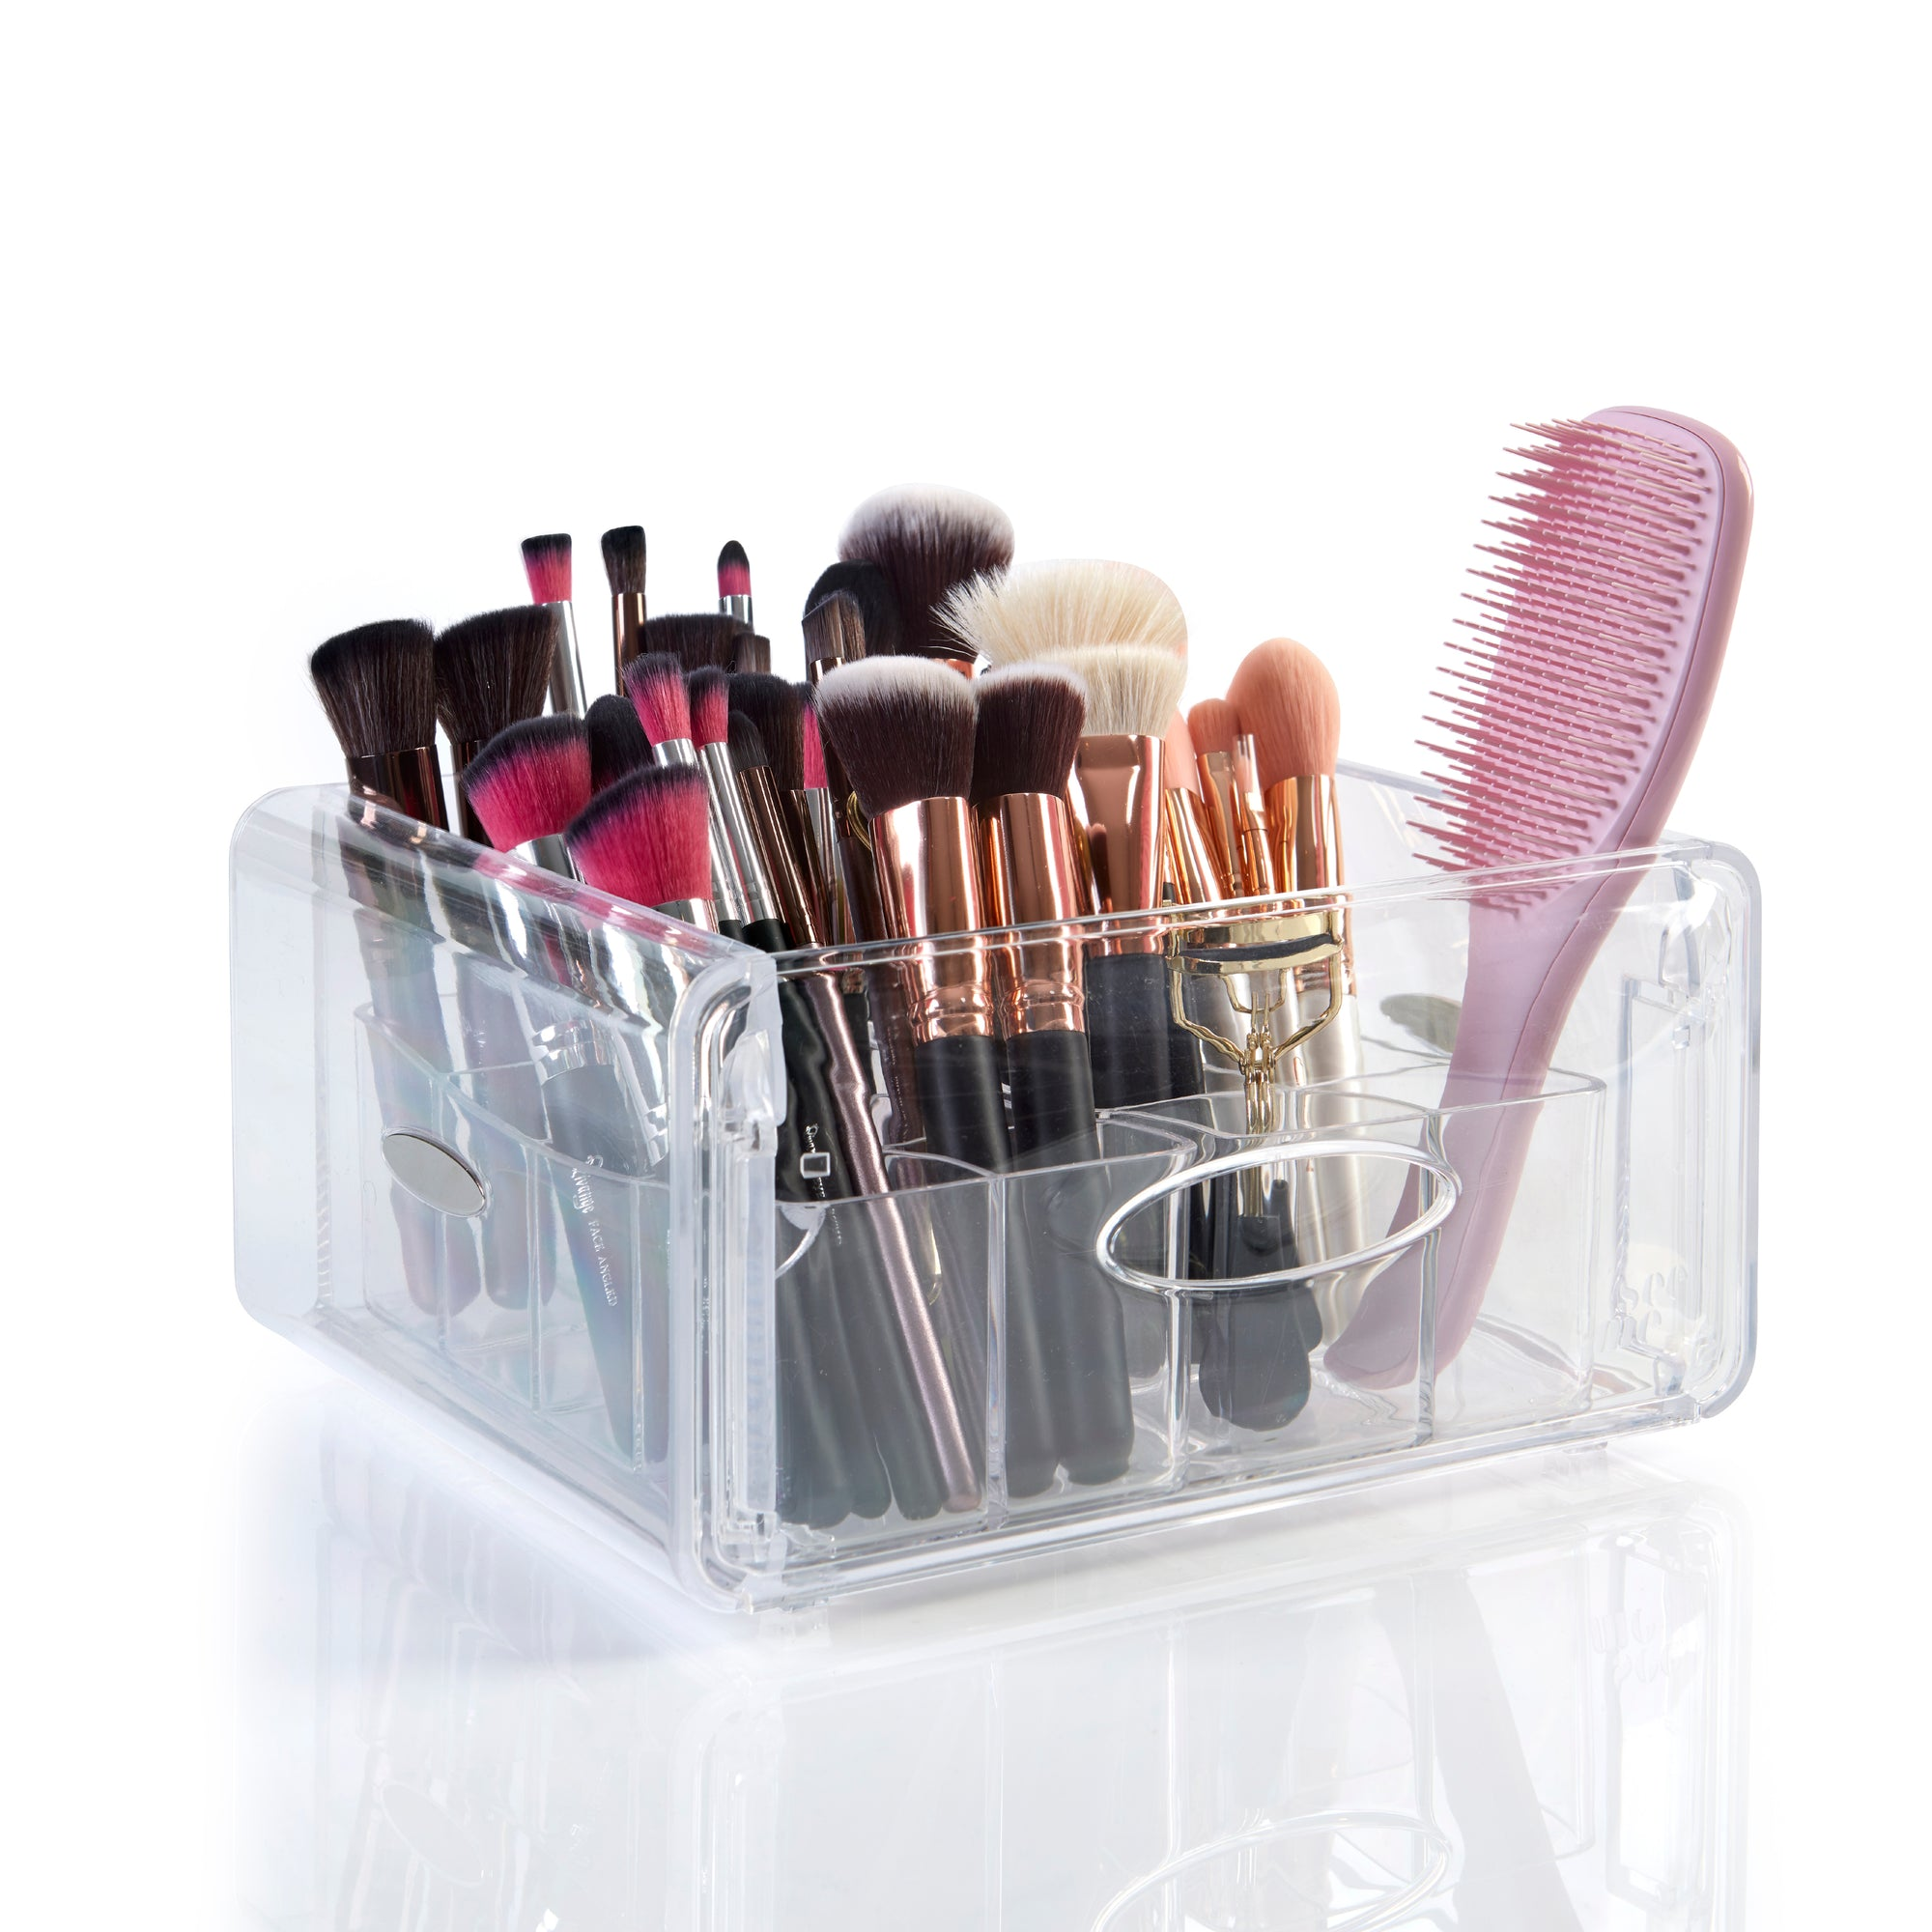 SEE ME ECLIPSE :: MAKEUP BRUSHES & ACCESSORIES ORGANISER - JUST OWN IT :: UK